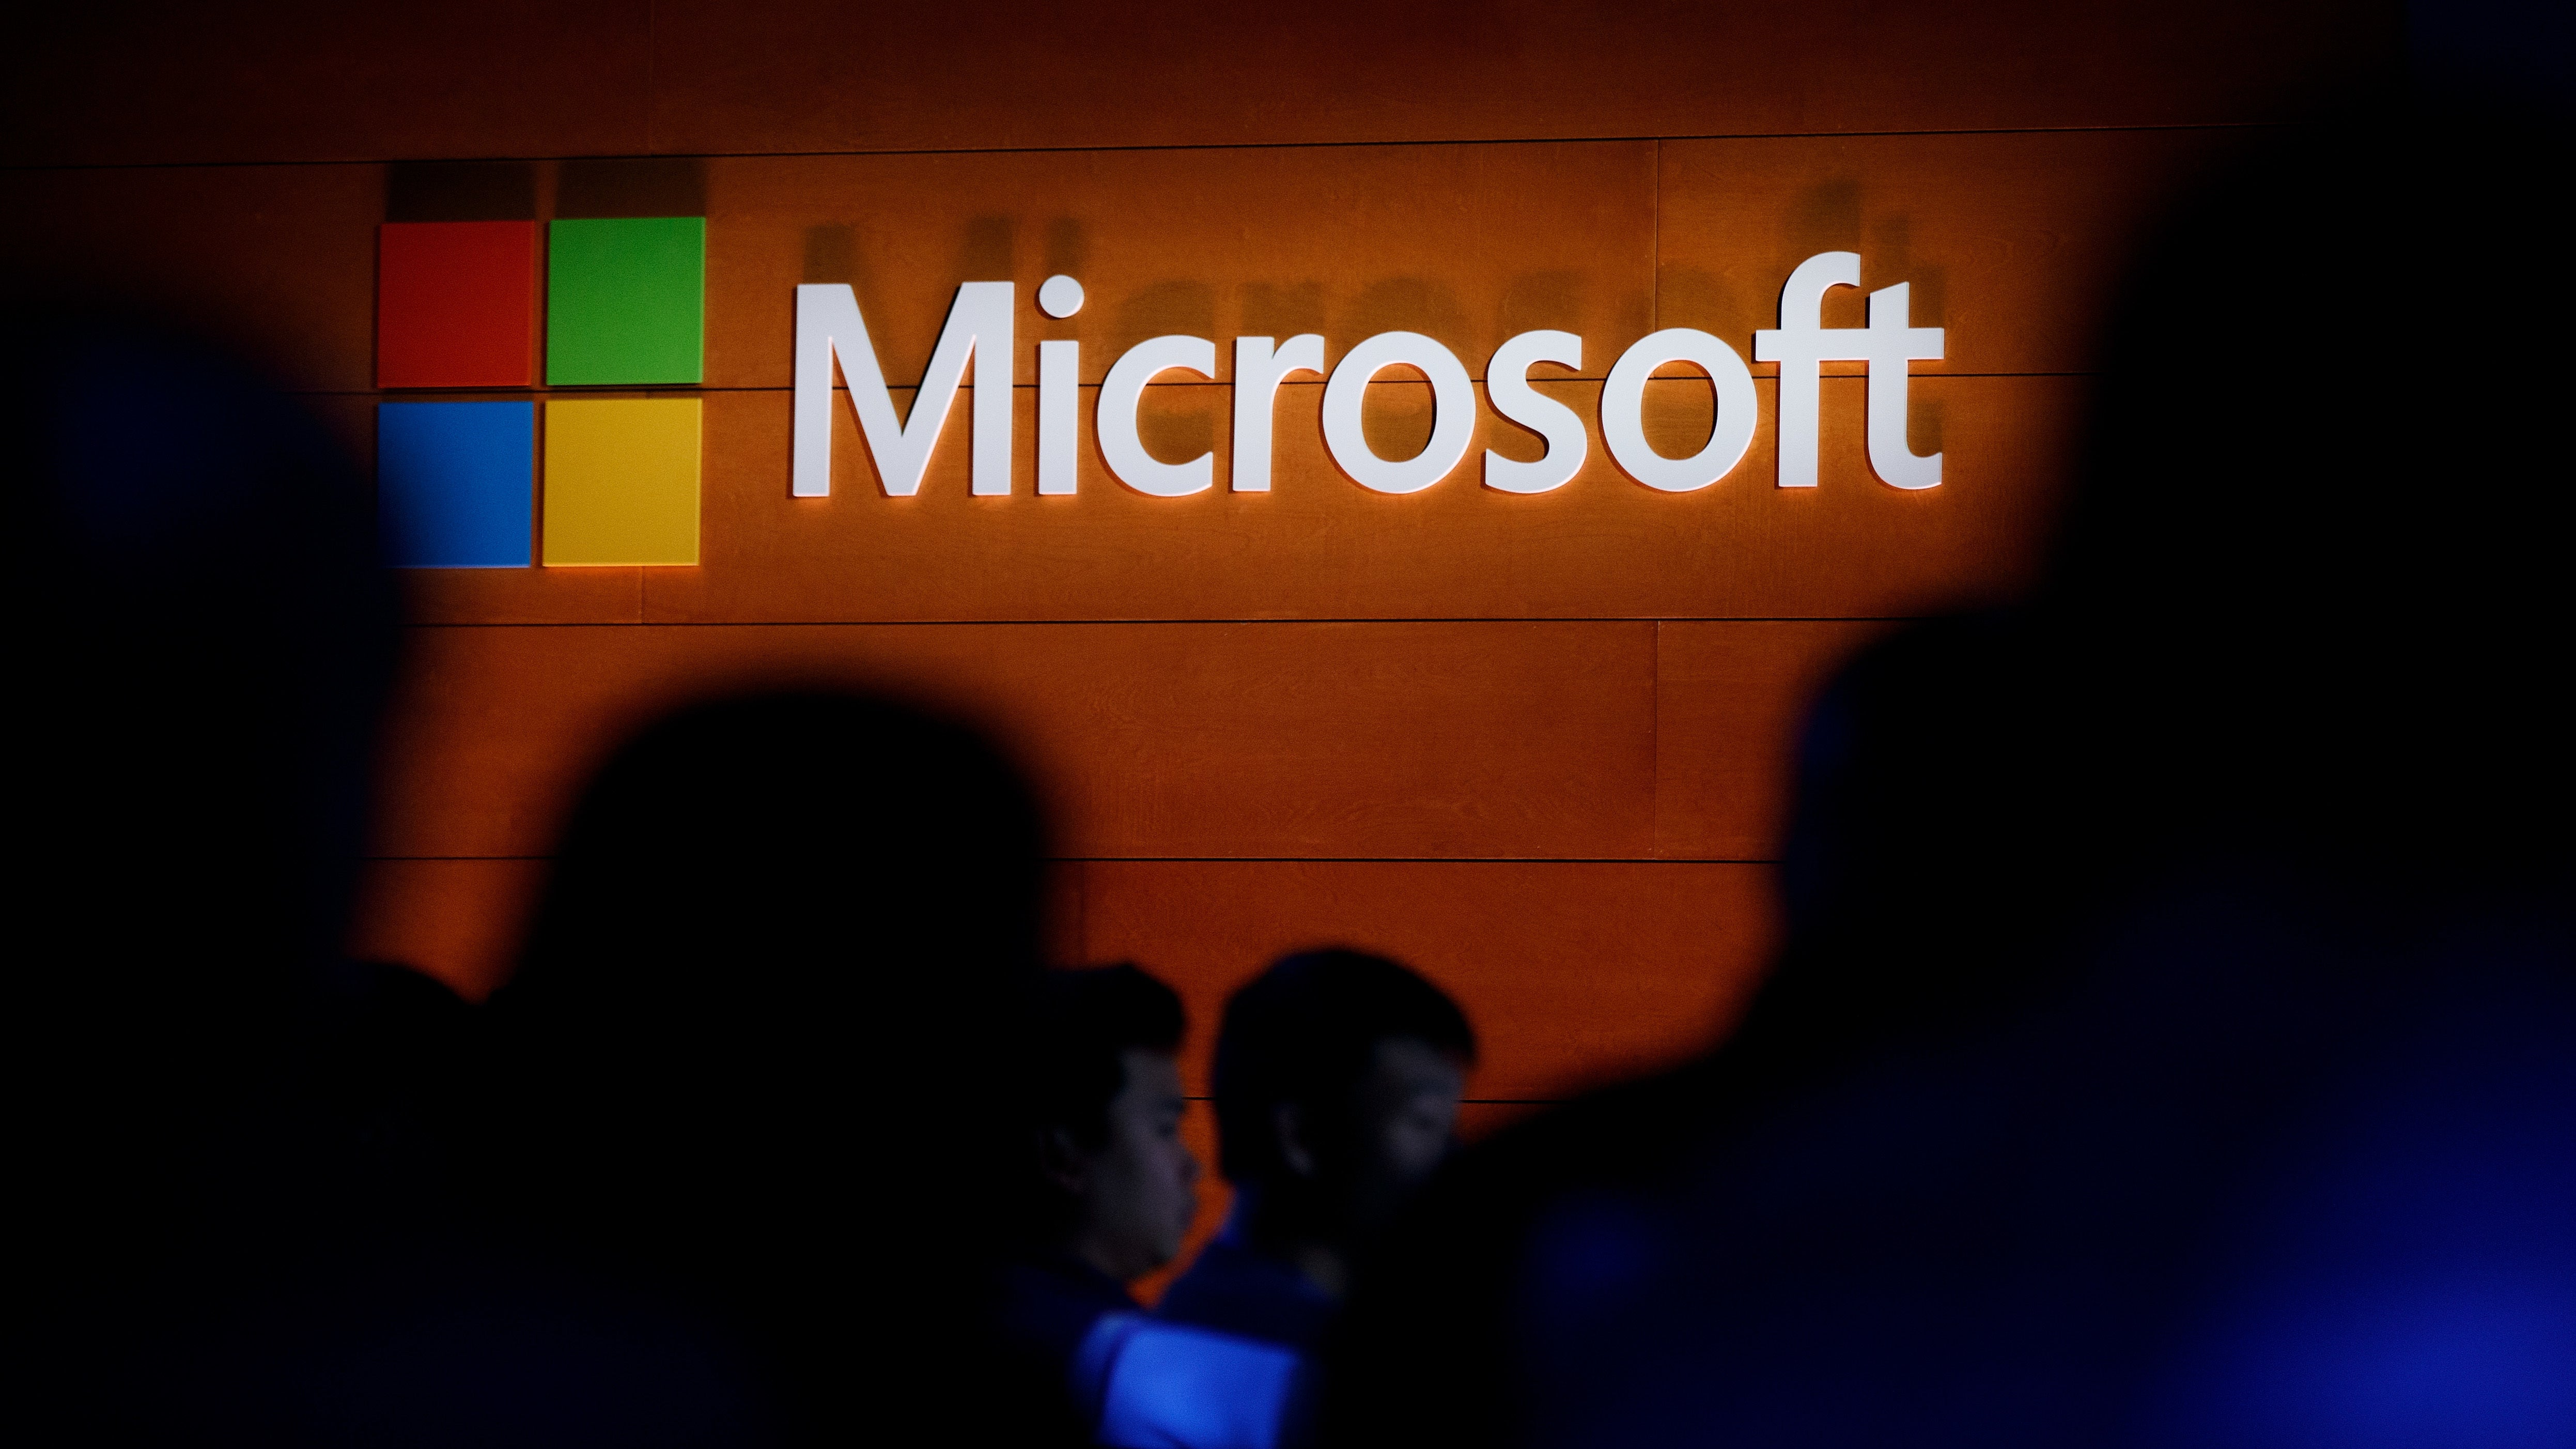 Microsoft Realises We Don't Actually Want Ads In Our Mail And Gmail Is Just An Exception